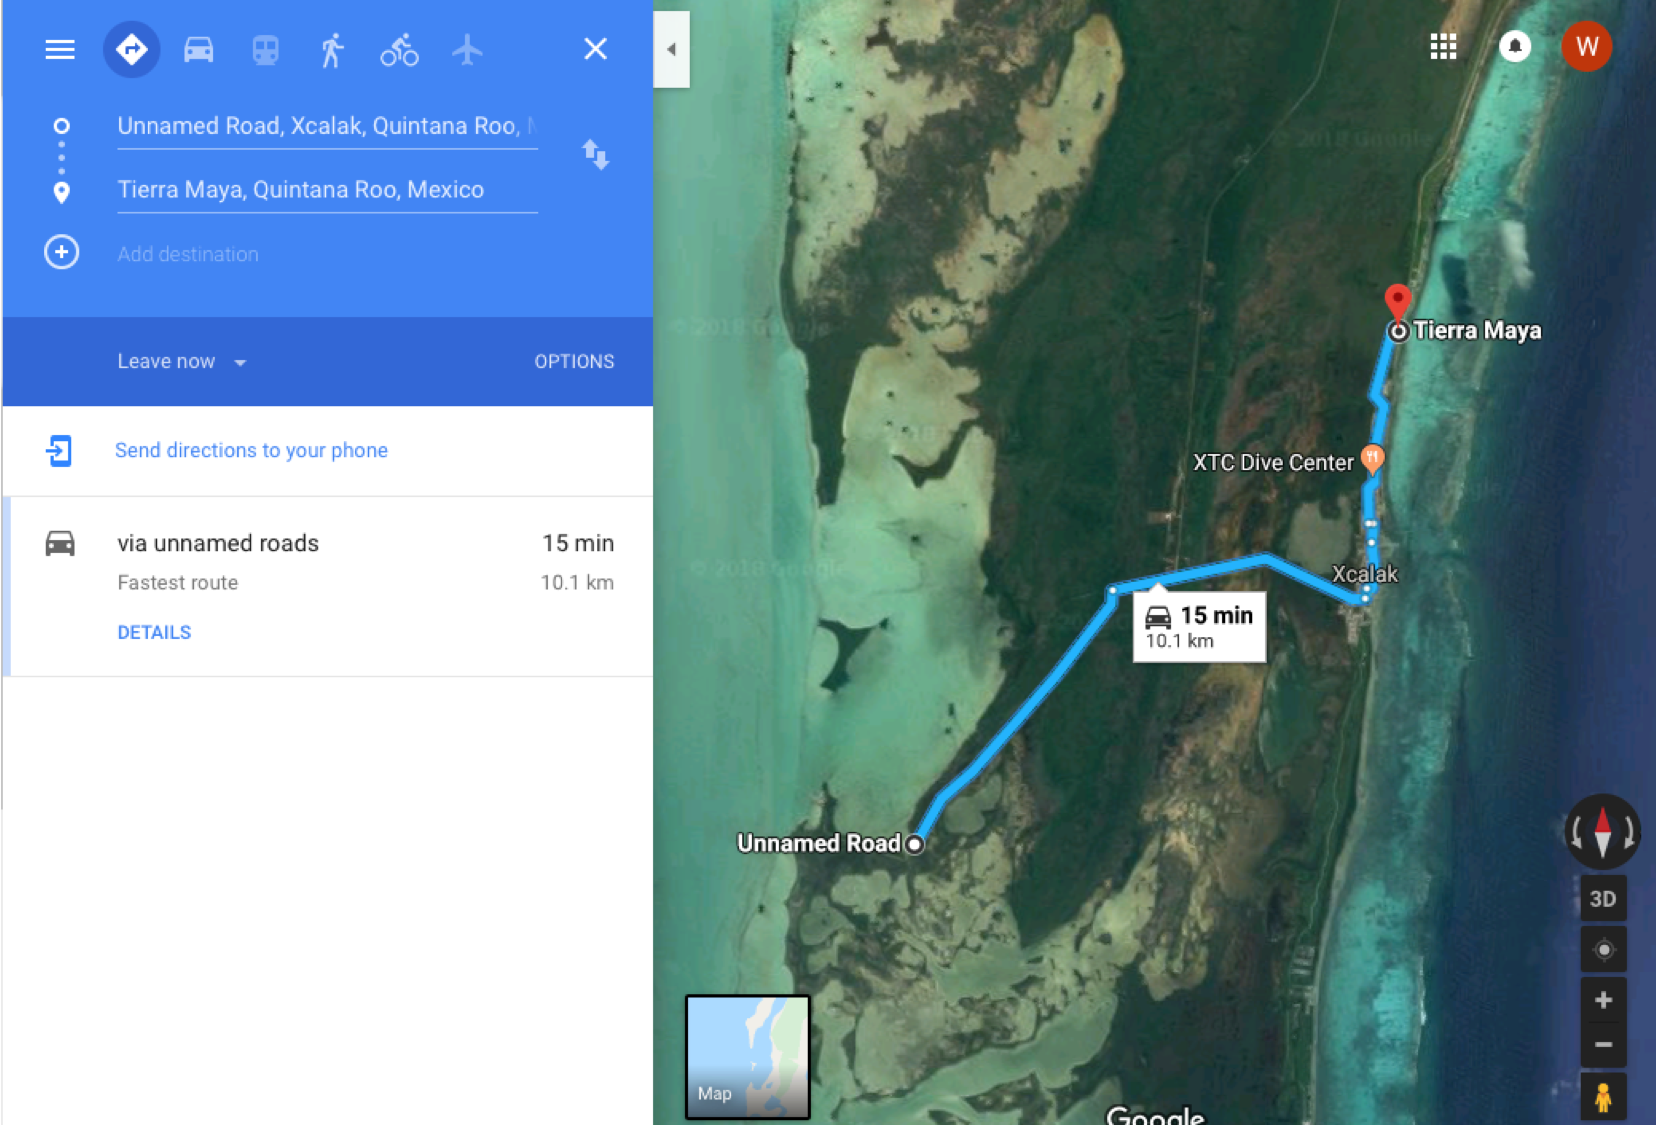 This is a 2019 Google Maps route from the Tierra Maya Hotel to where Ron's rental car was originally parked and later found on April 11, 2009. You can follow this entire route using the